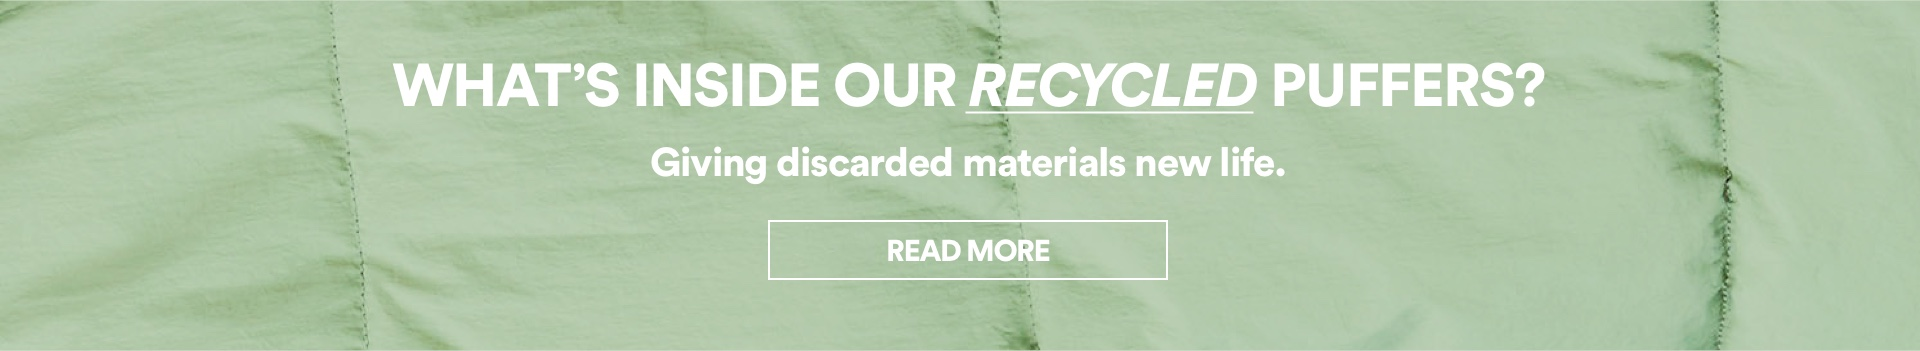 What's inside our recycled puffers? Find out more.